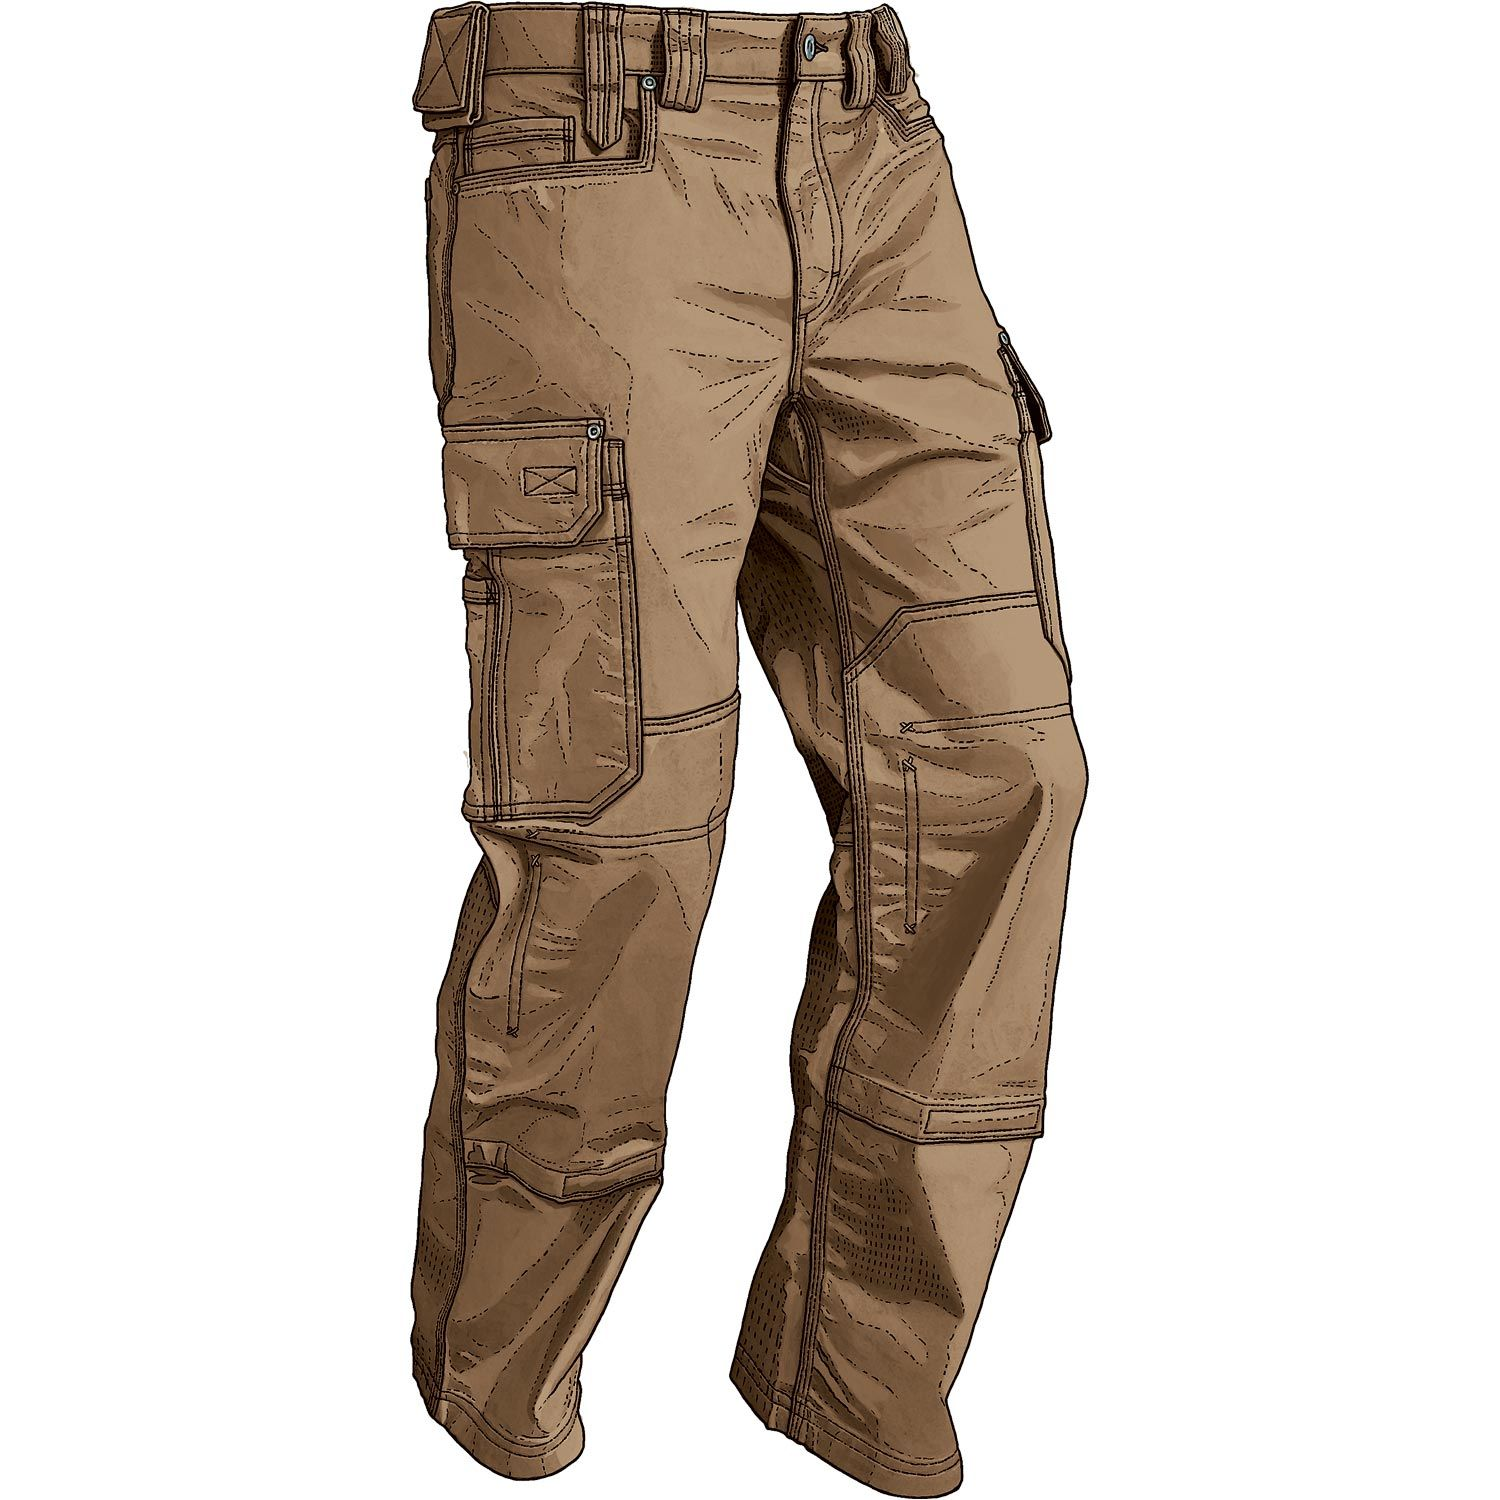 Make your own style icon with stylish cargo pants